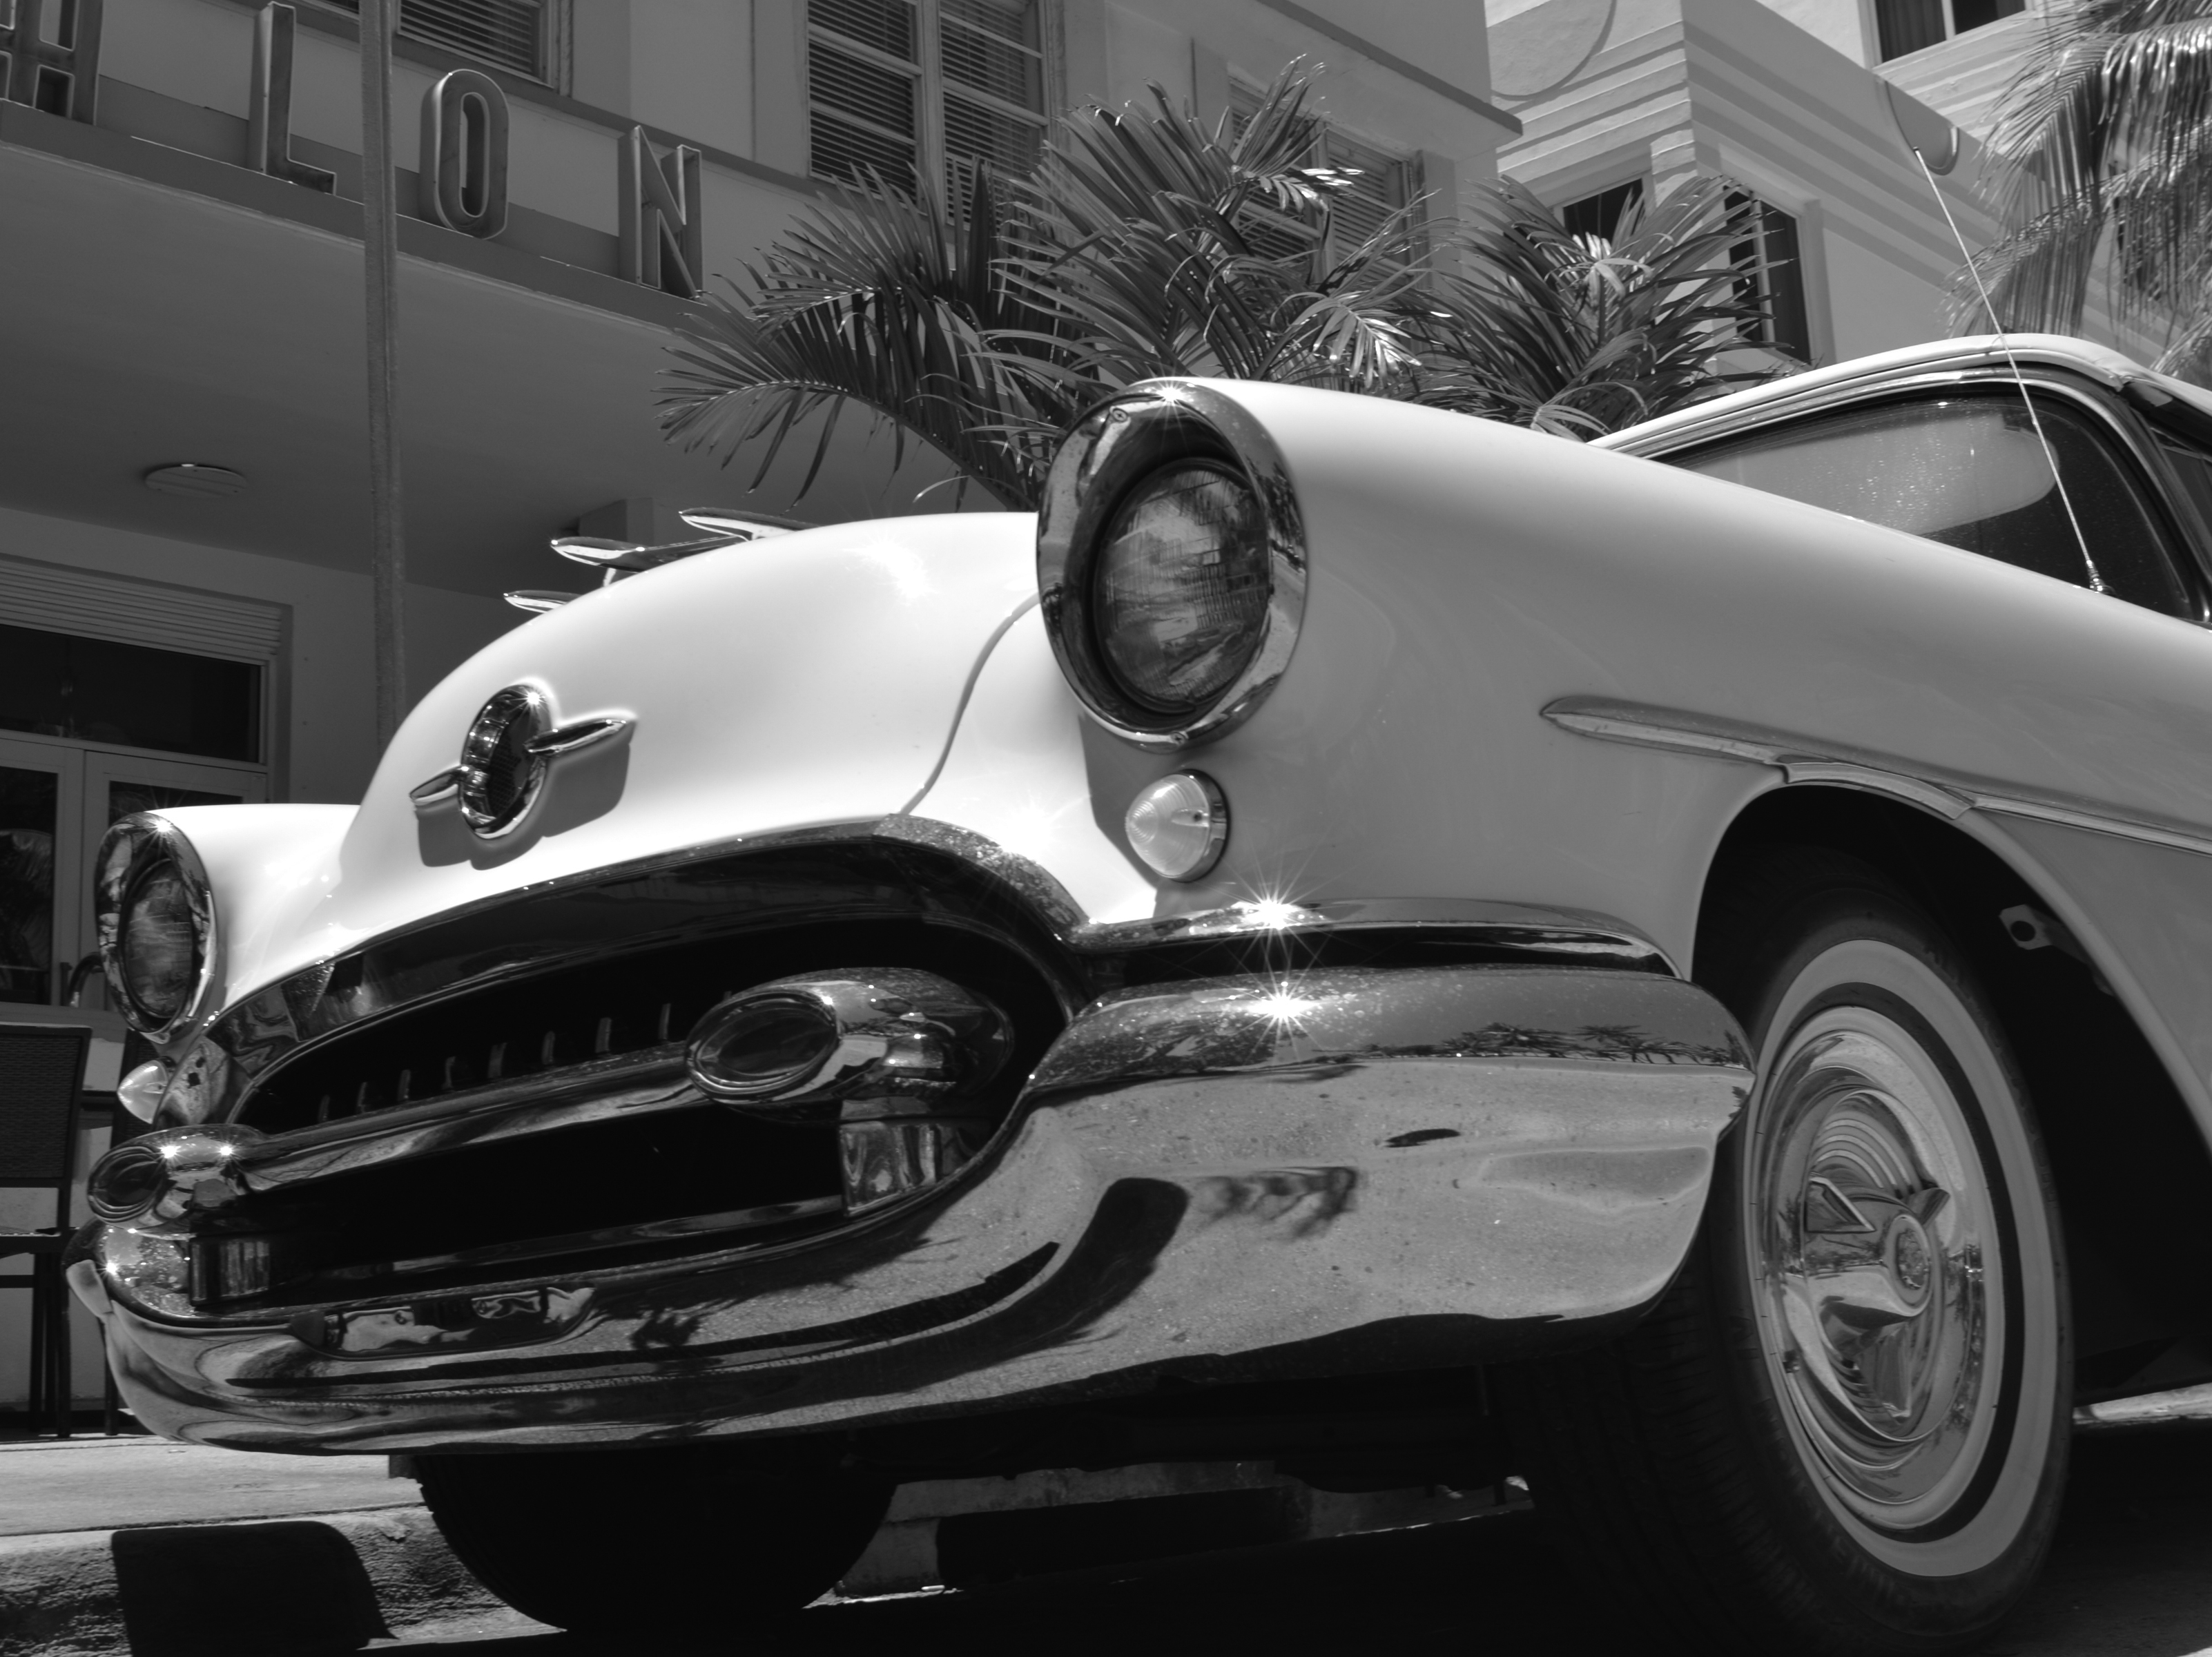 File:South Beach Miami Classic Car by D Ramey Logan.jpg - Wikimedia ...